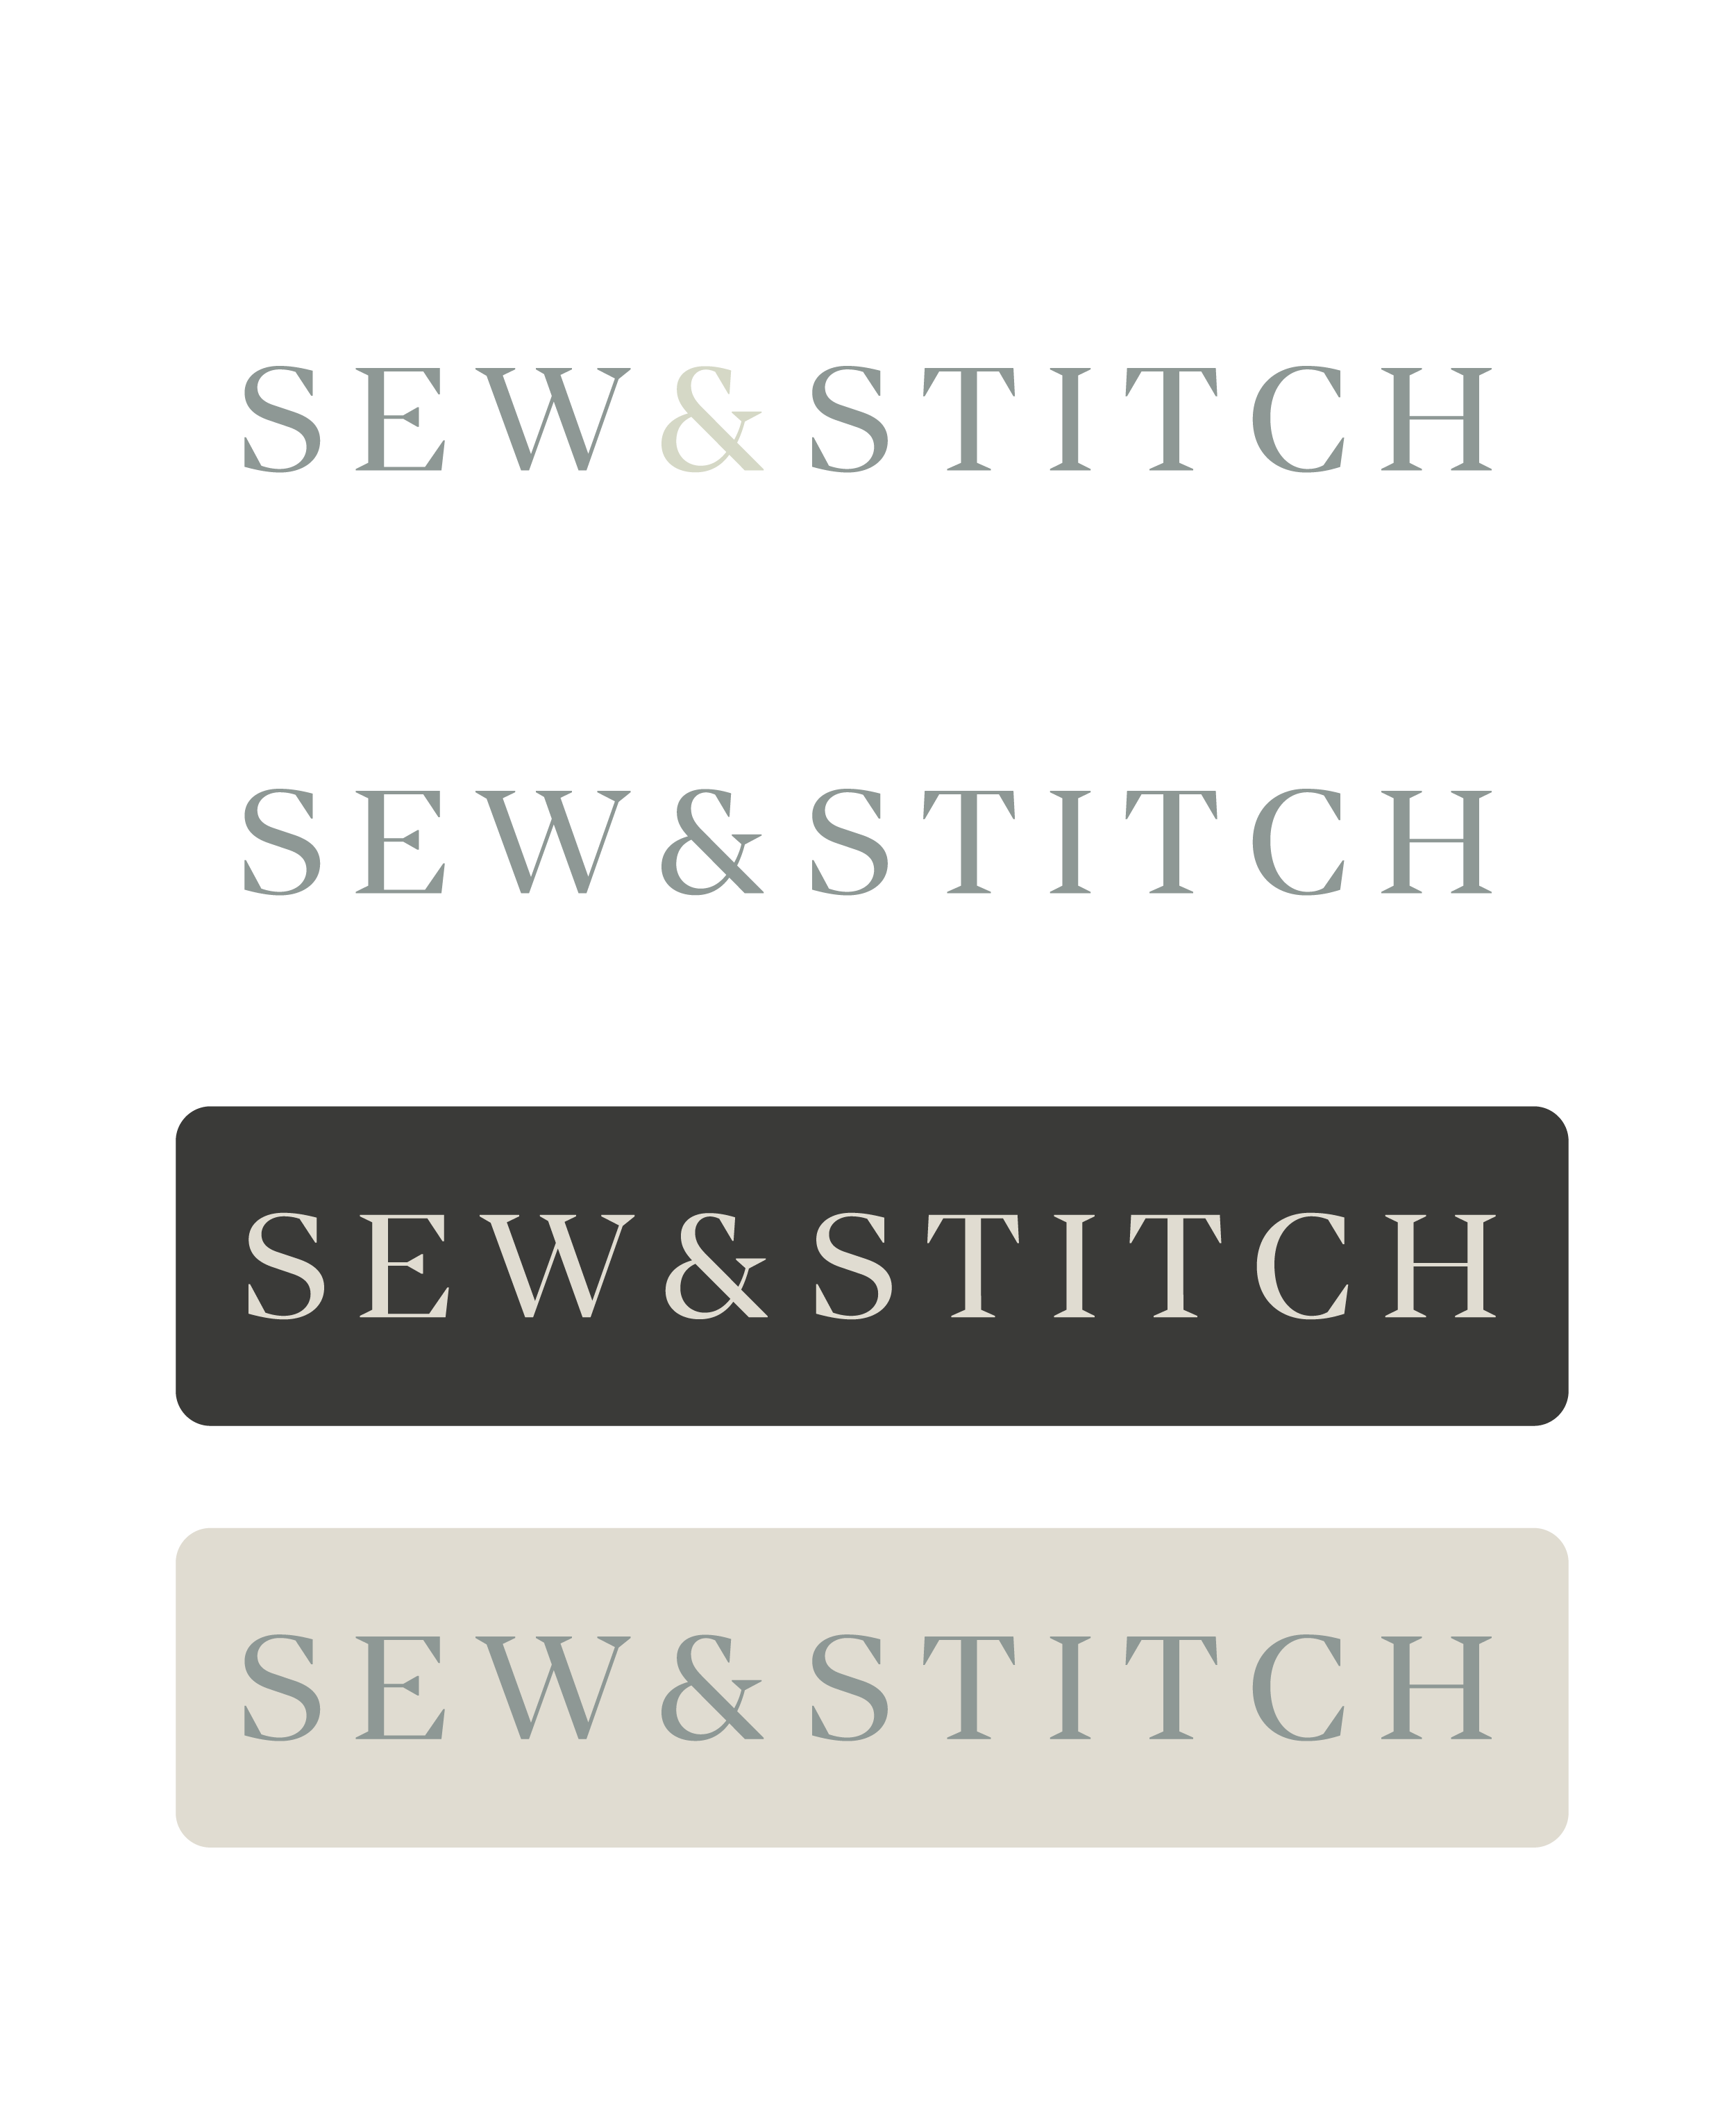 various styles of the sew & stitch logo